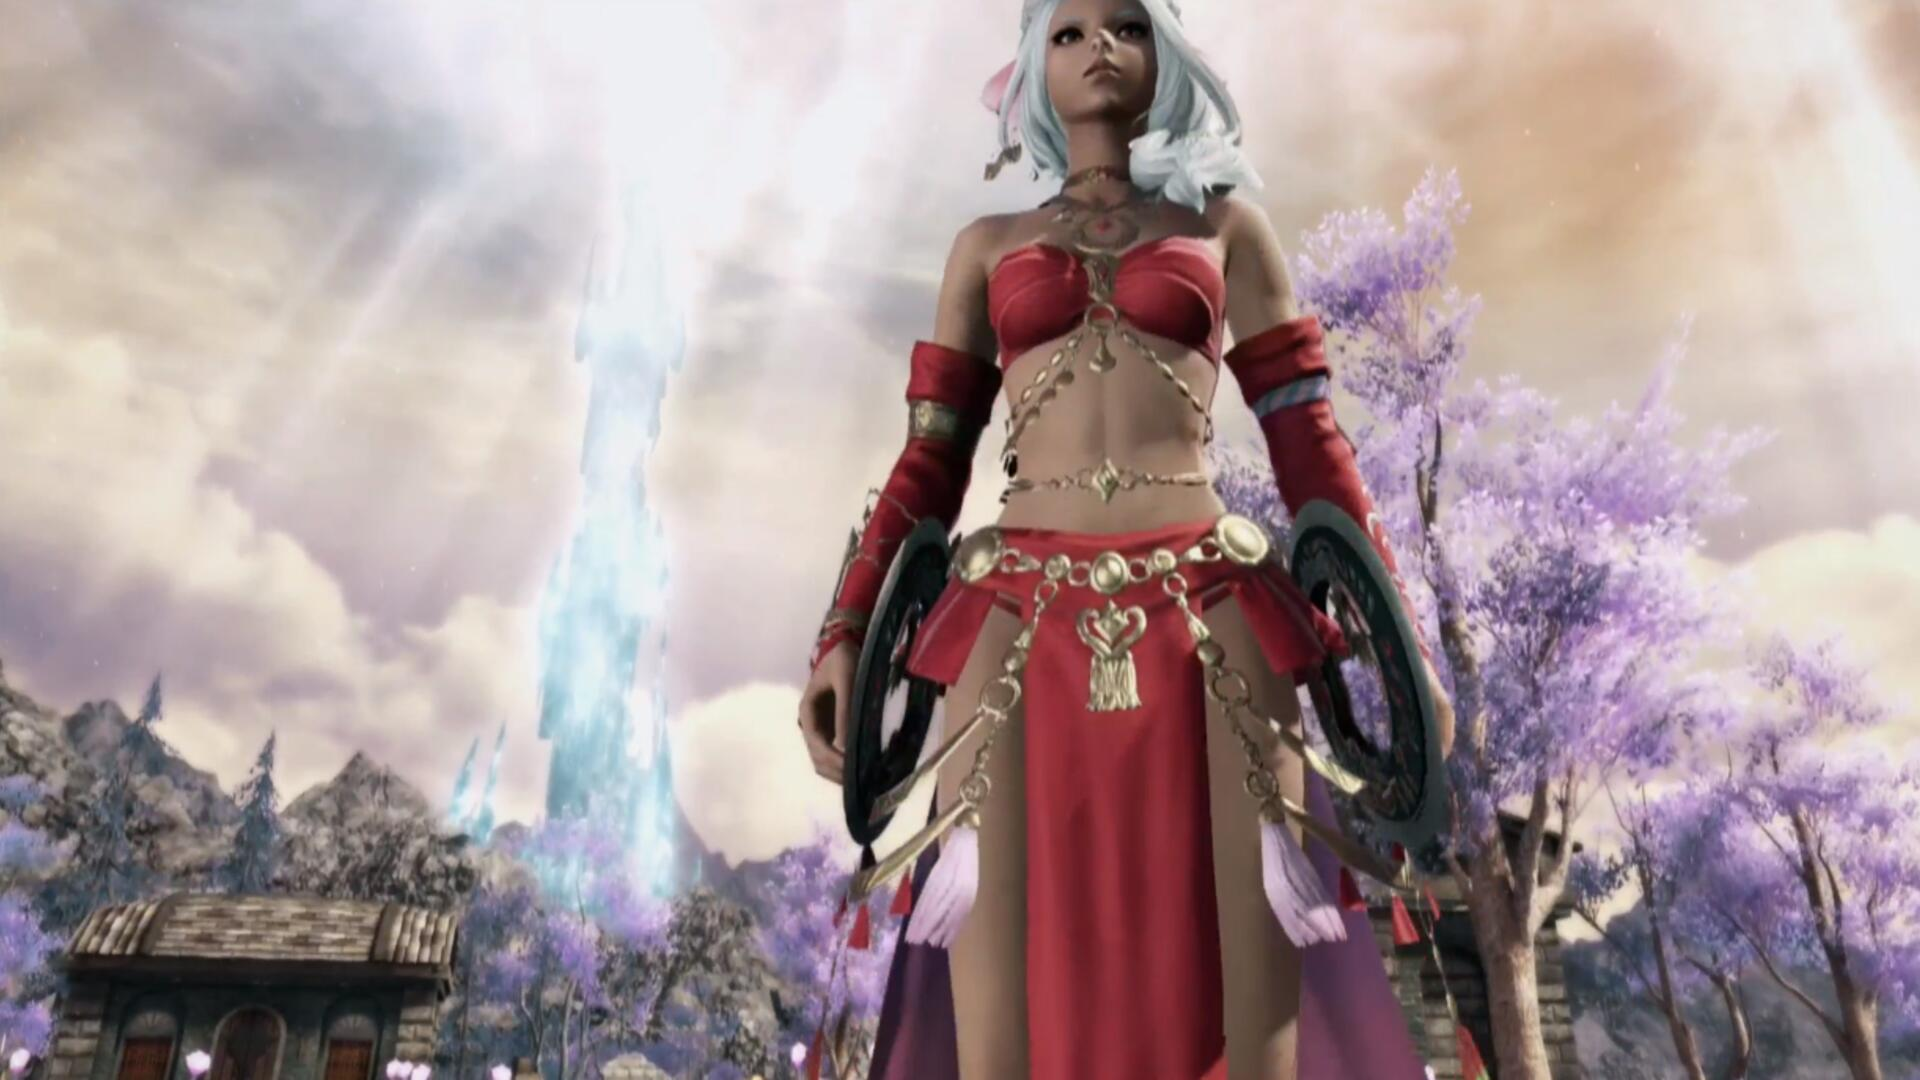 Final Fantasy 14: Shadowbringers' Last Job is Dancer